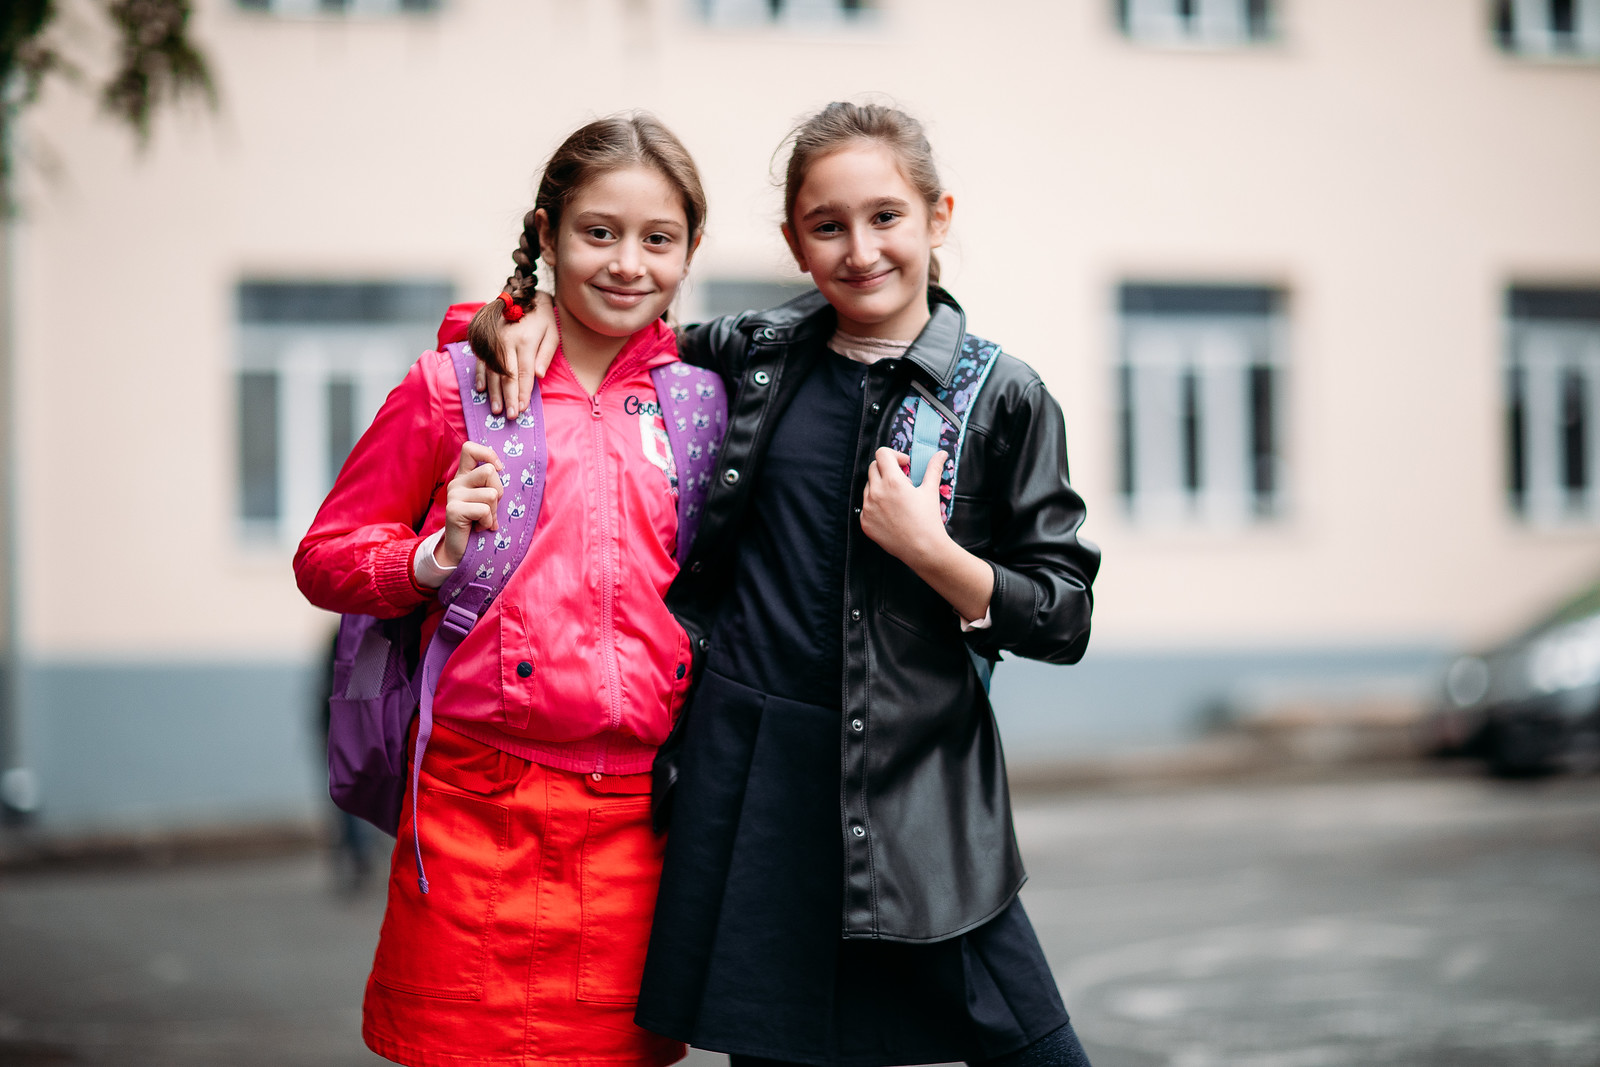 EU4Energy: Improving energy efficiency in schools and day care centres in Georgia